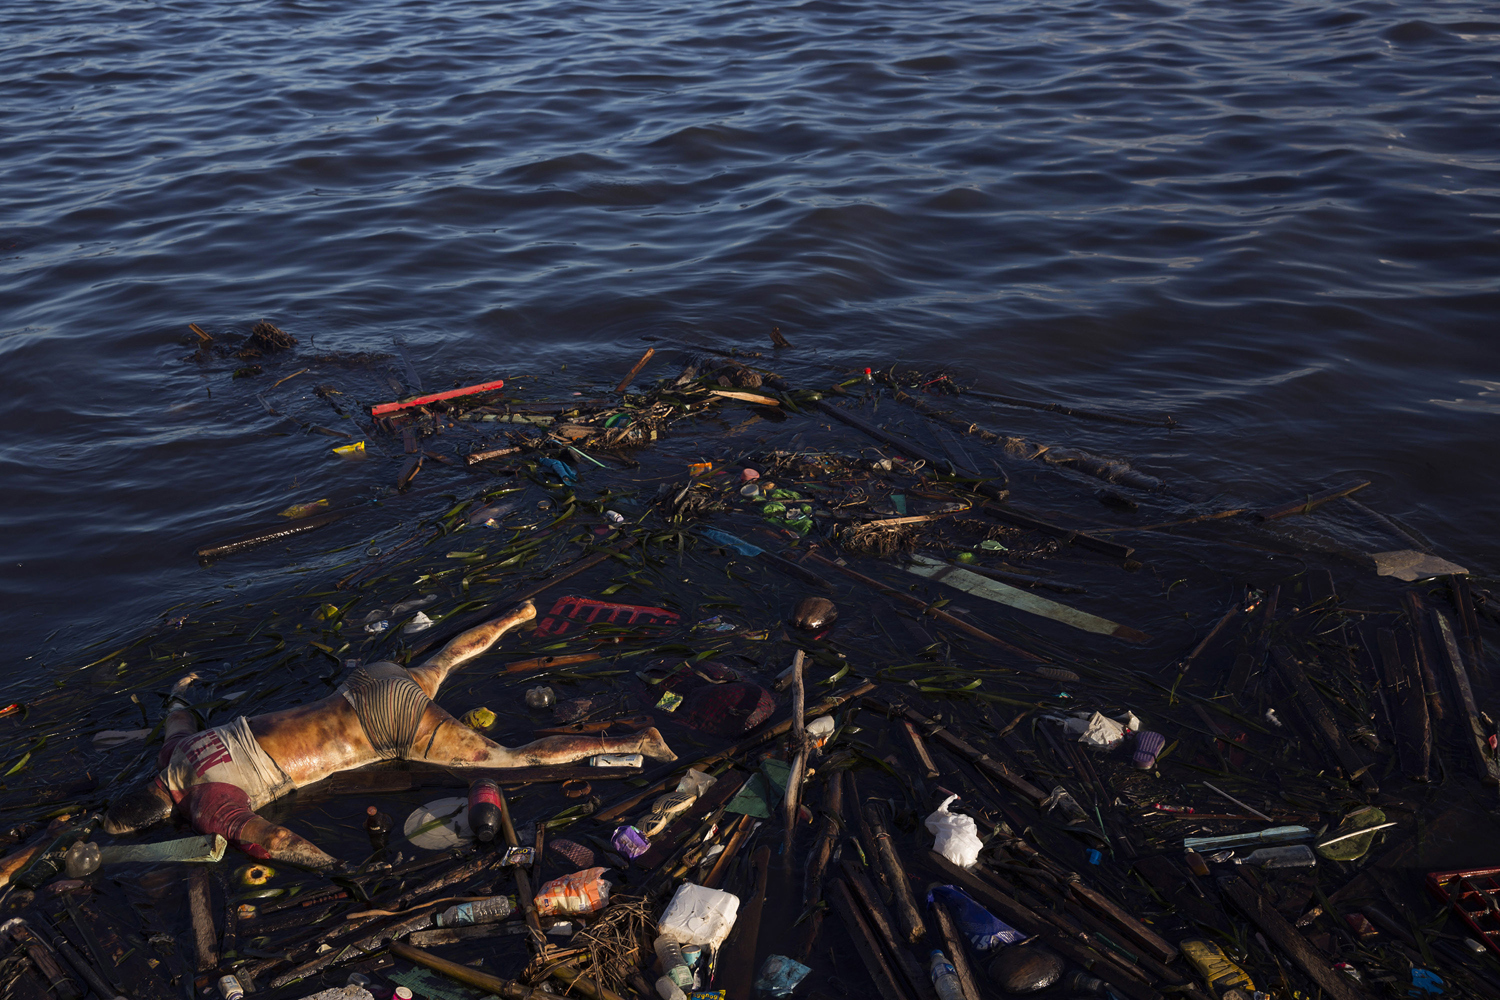 The body of a man killed by Typhoon Haiyan is washed up along the shore in Tacloban, Philippines on November 16, 2013.